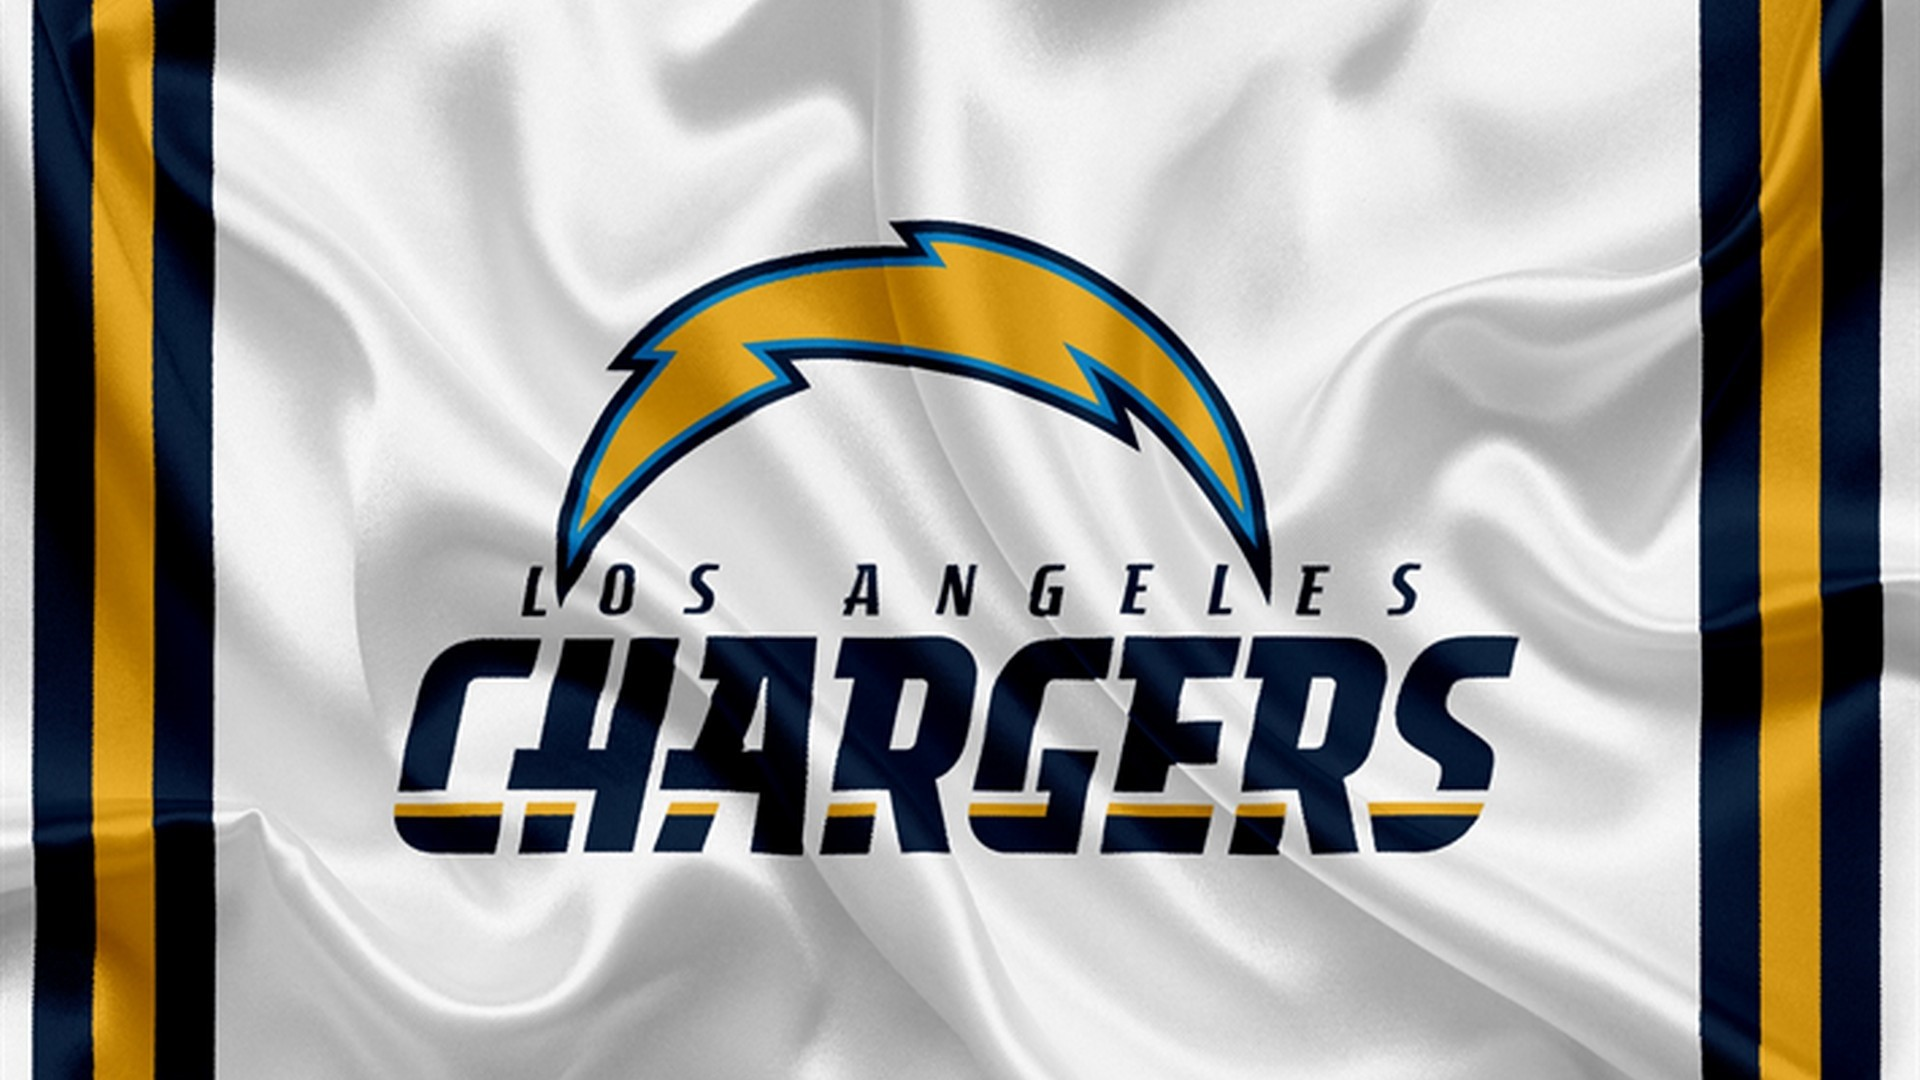 Chargers Wallpaper for pc